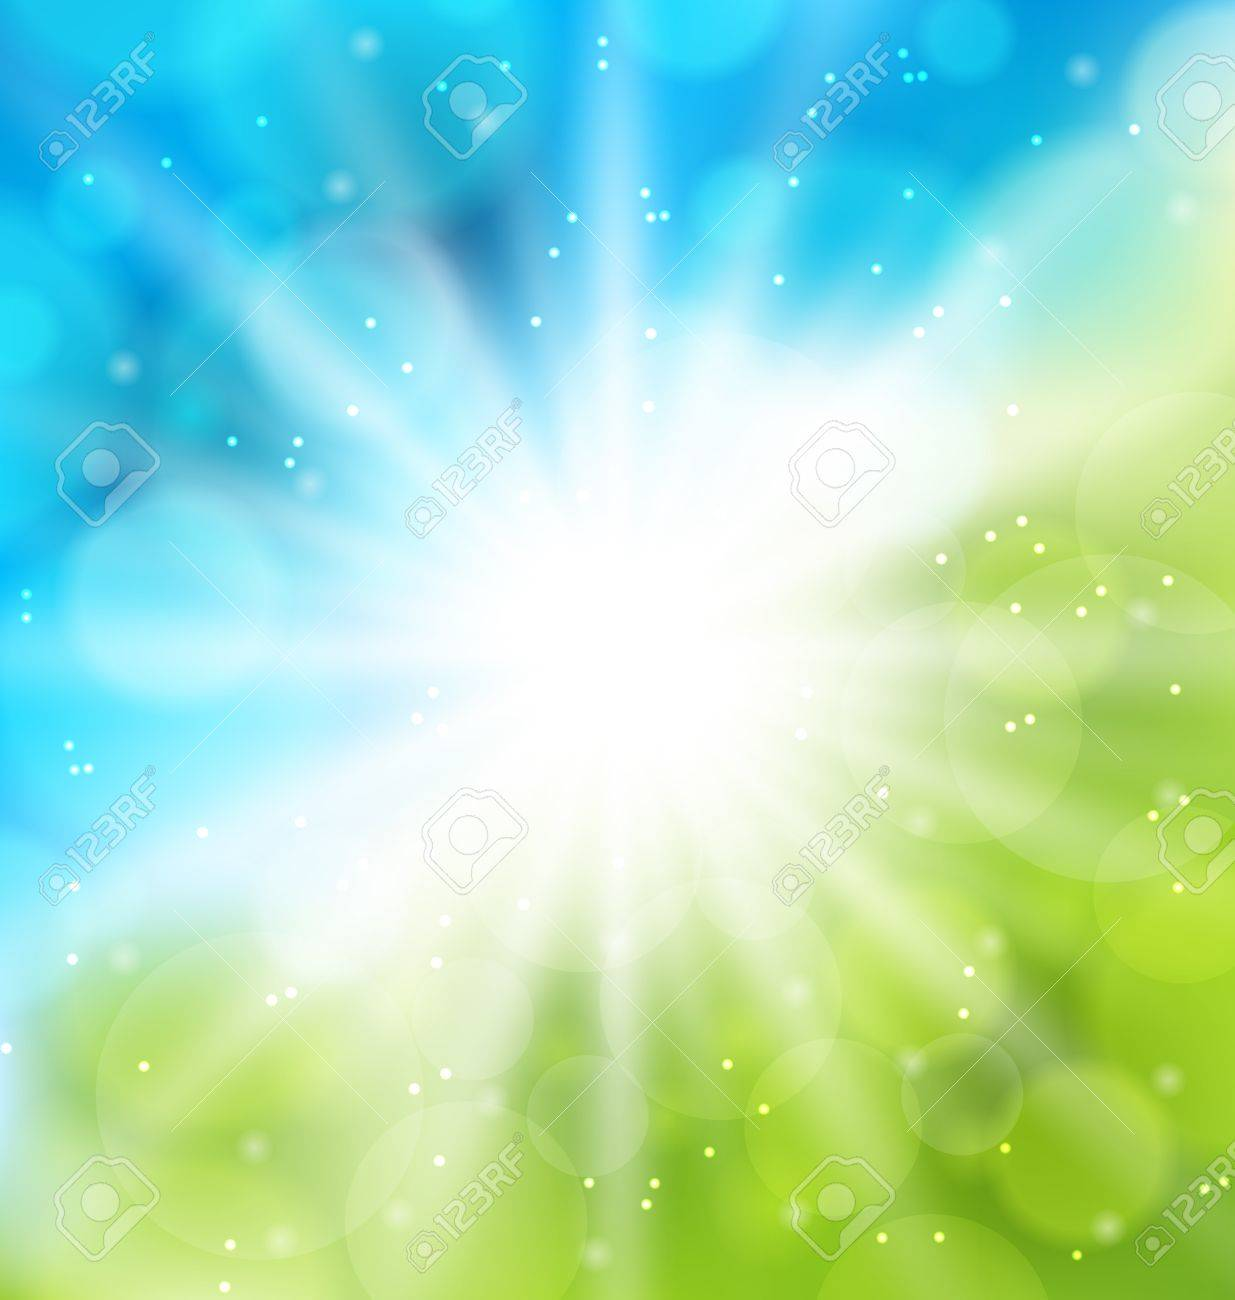 Illustration cute nature background with lens flare - vector Stock Photo - 19676395